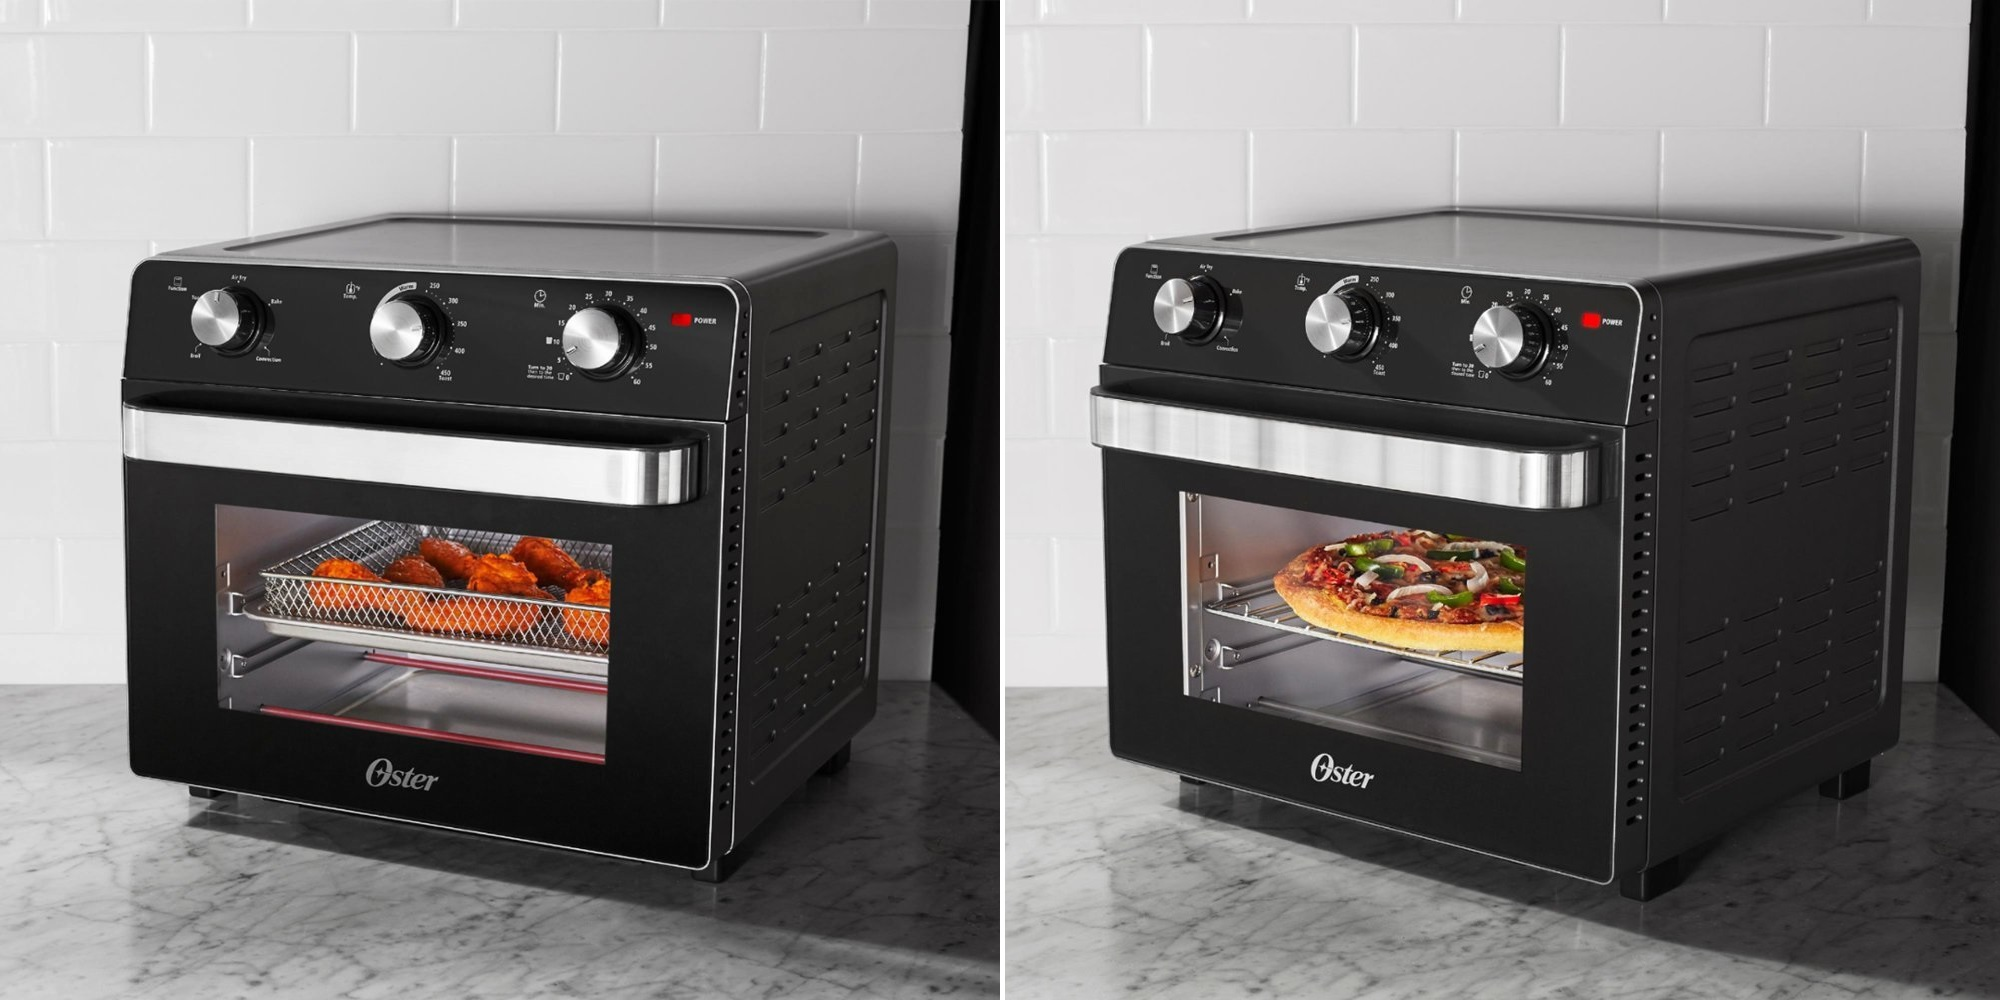 Save At Least 50 On This Oster Air Fryer Toaster Oven For